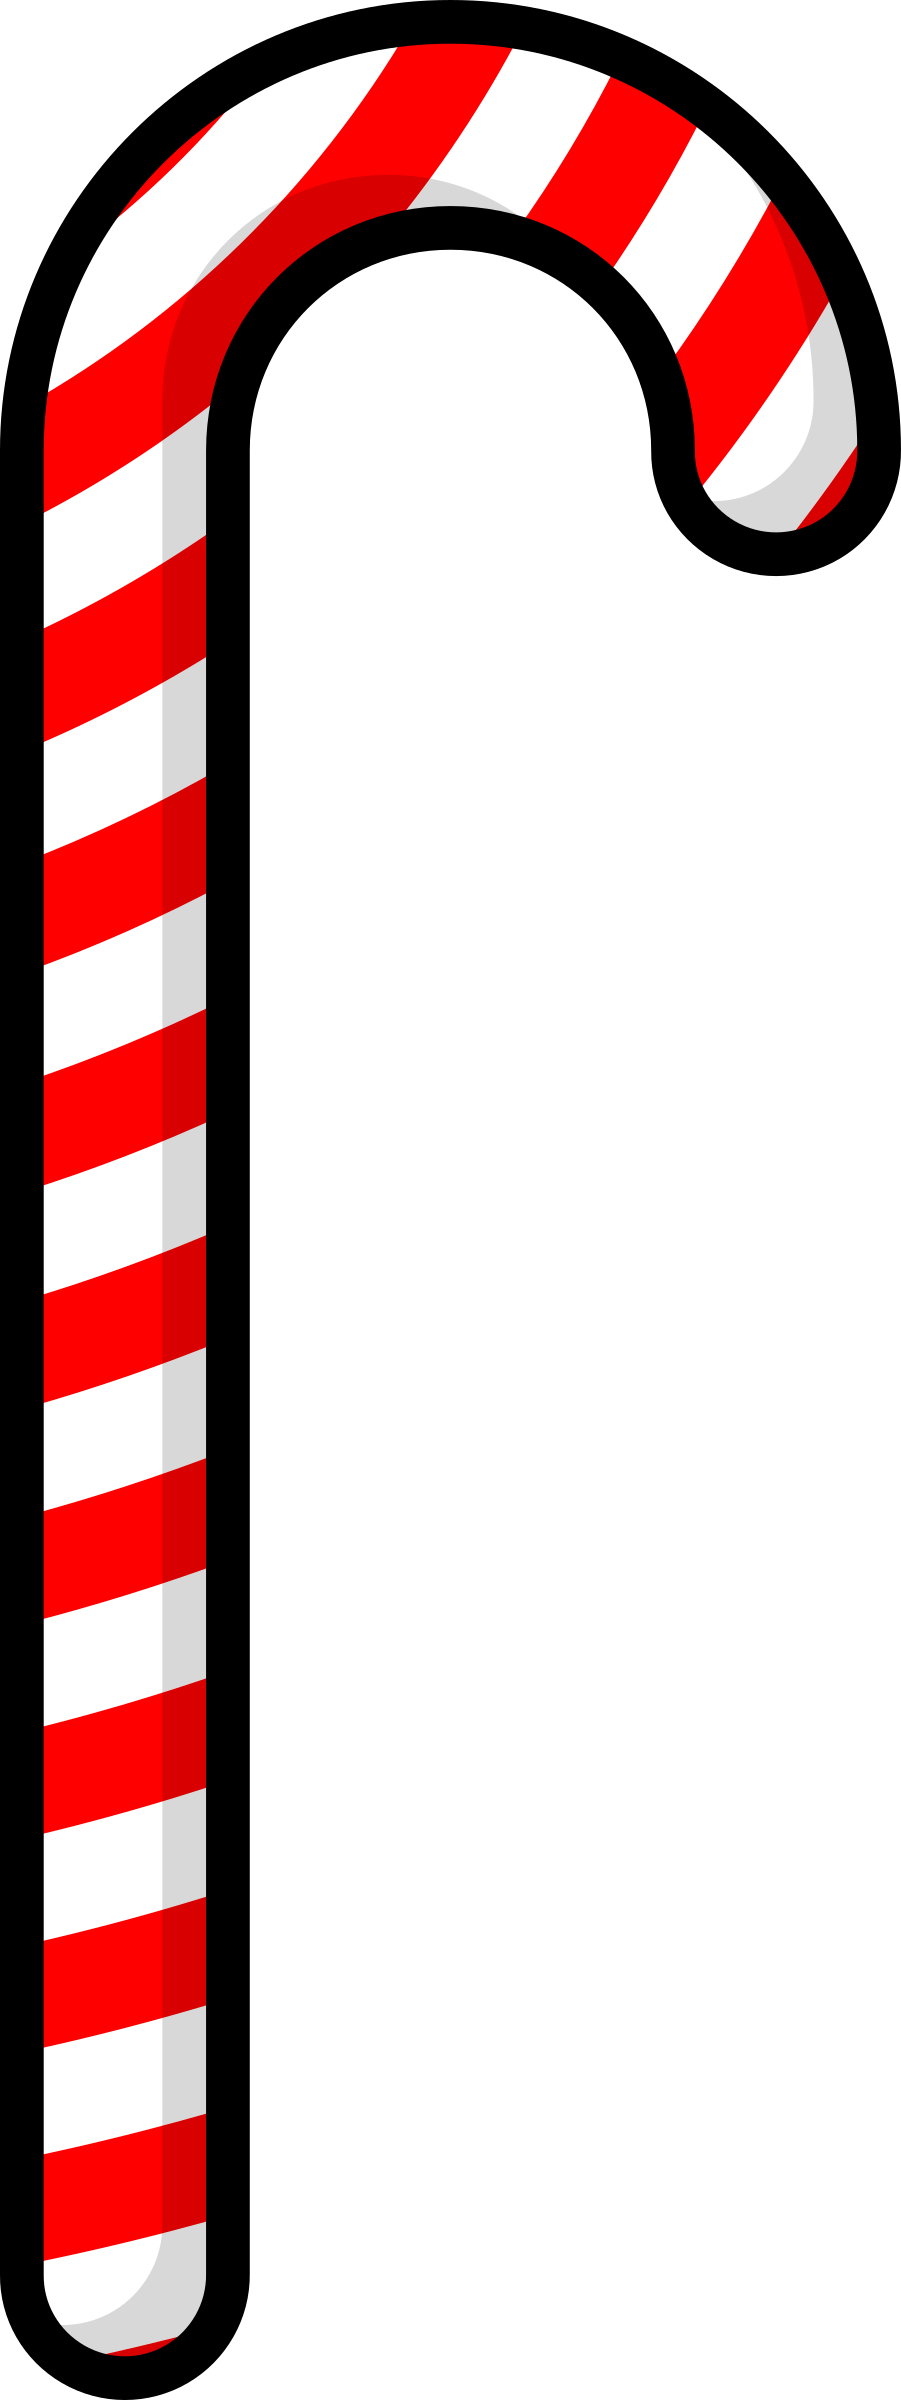 Candy cane by purzen